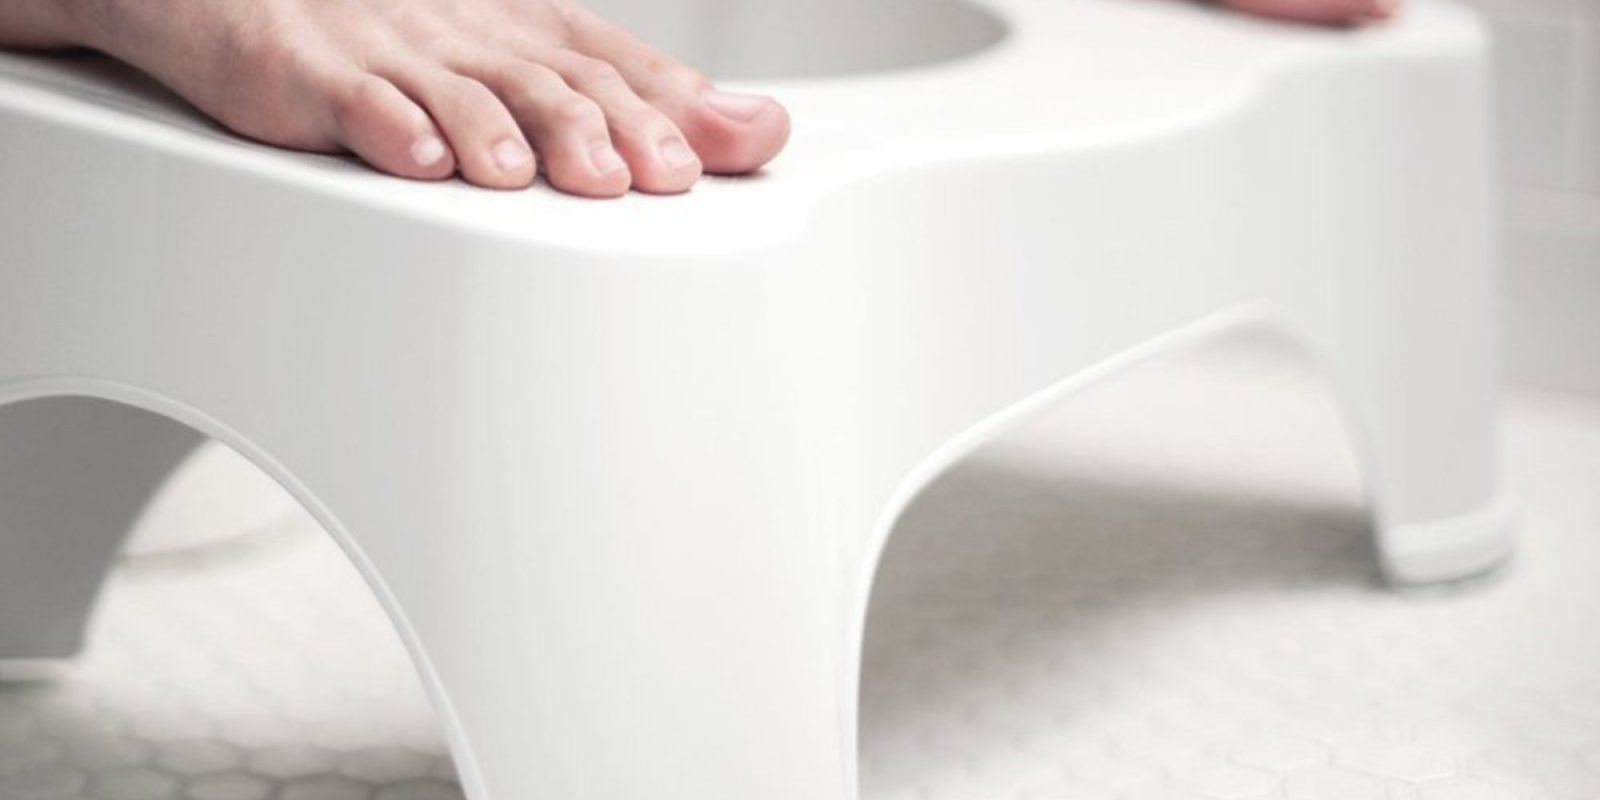 Take productivity to new heights with Squatty Potty: $17.50 (Amazon low)